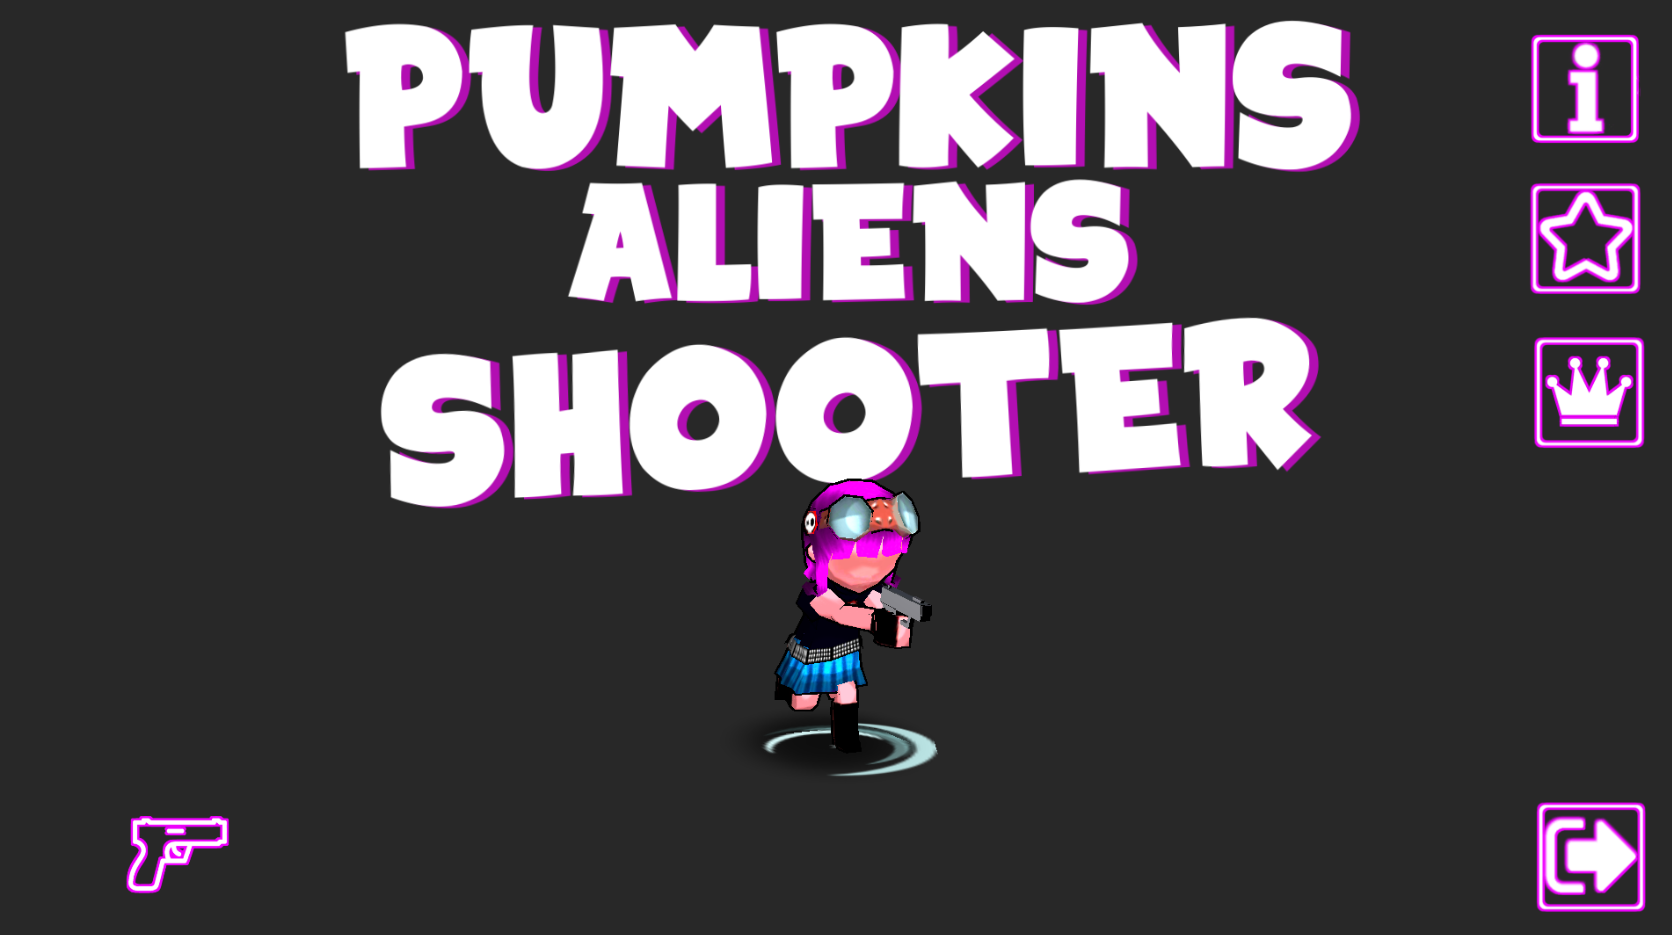 Pumkins Aliens shooter